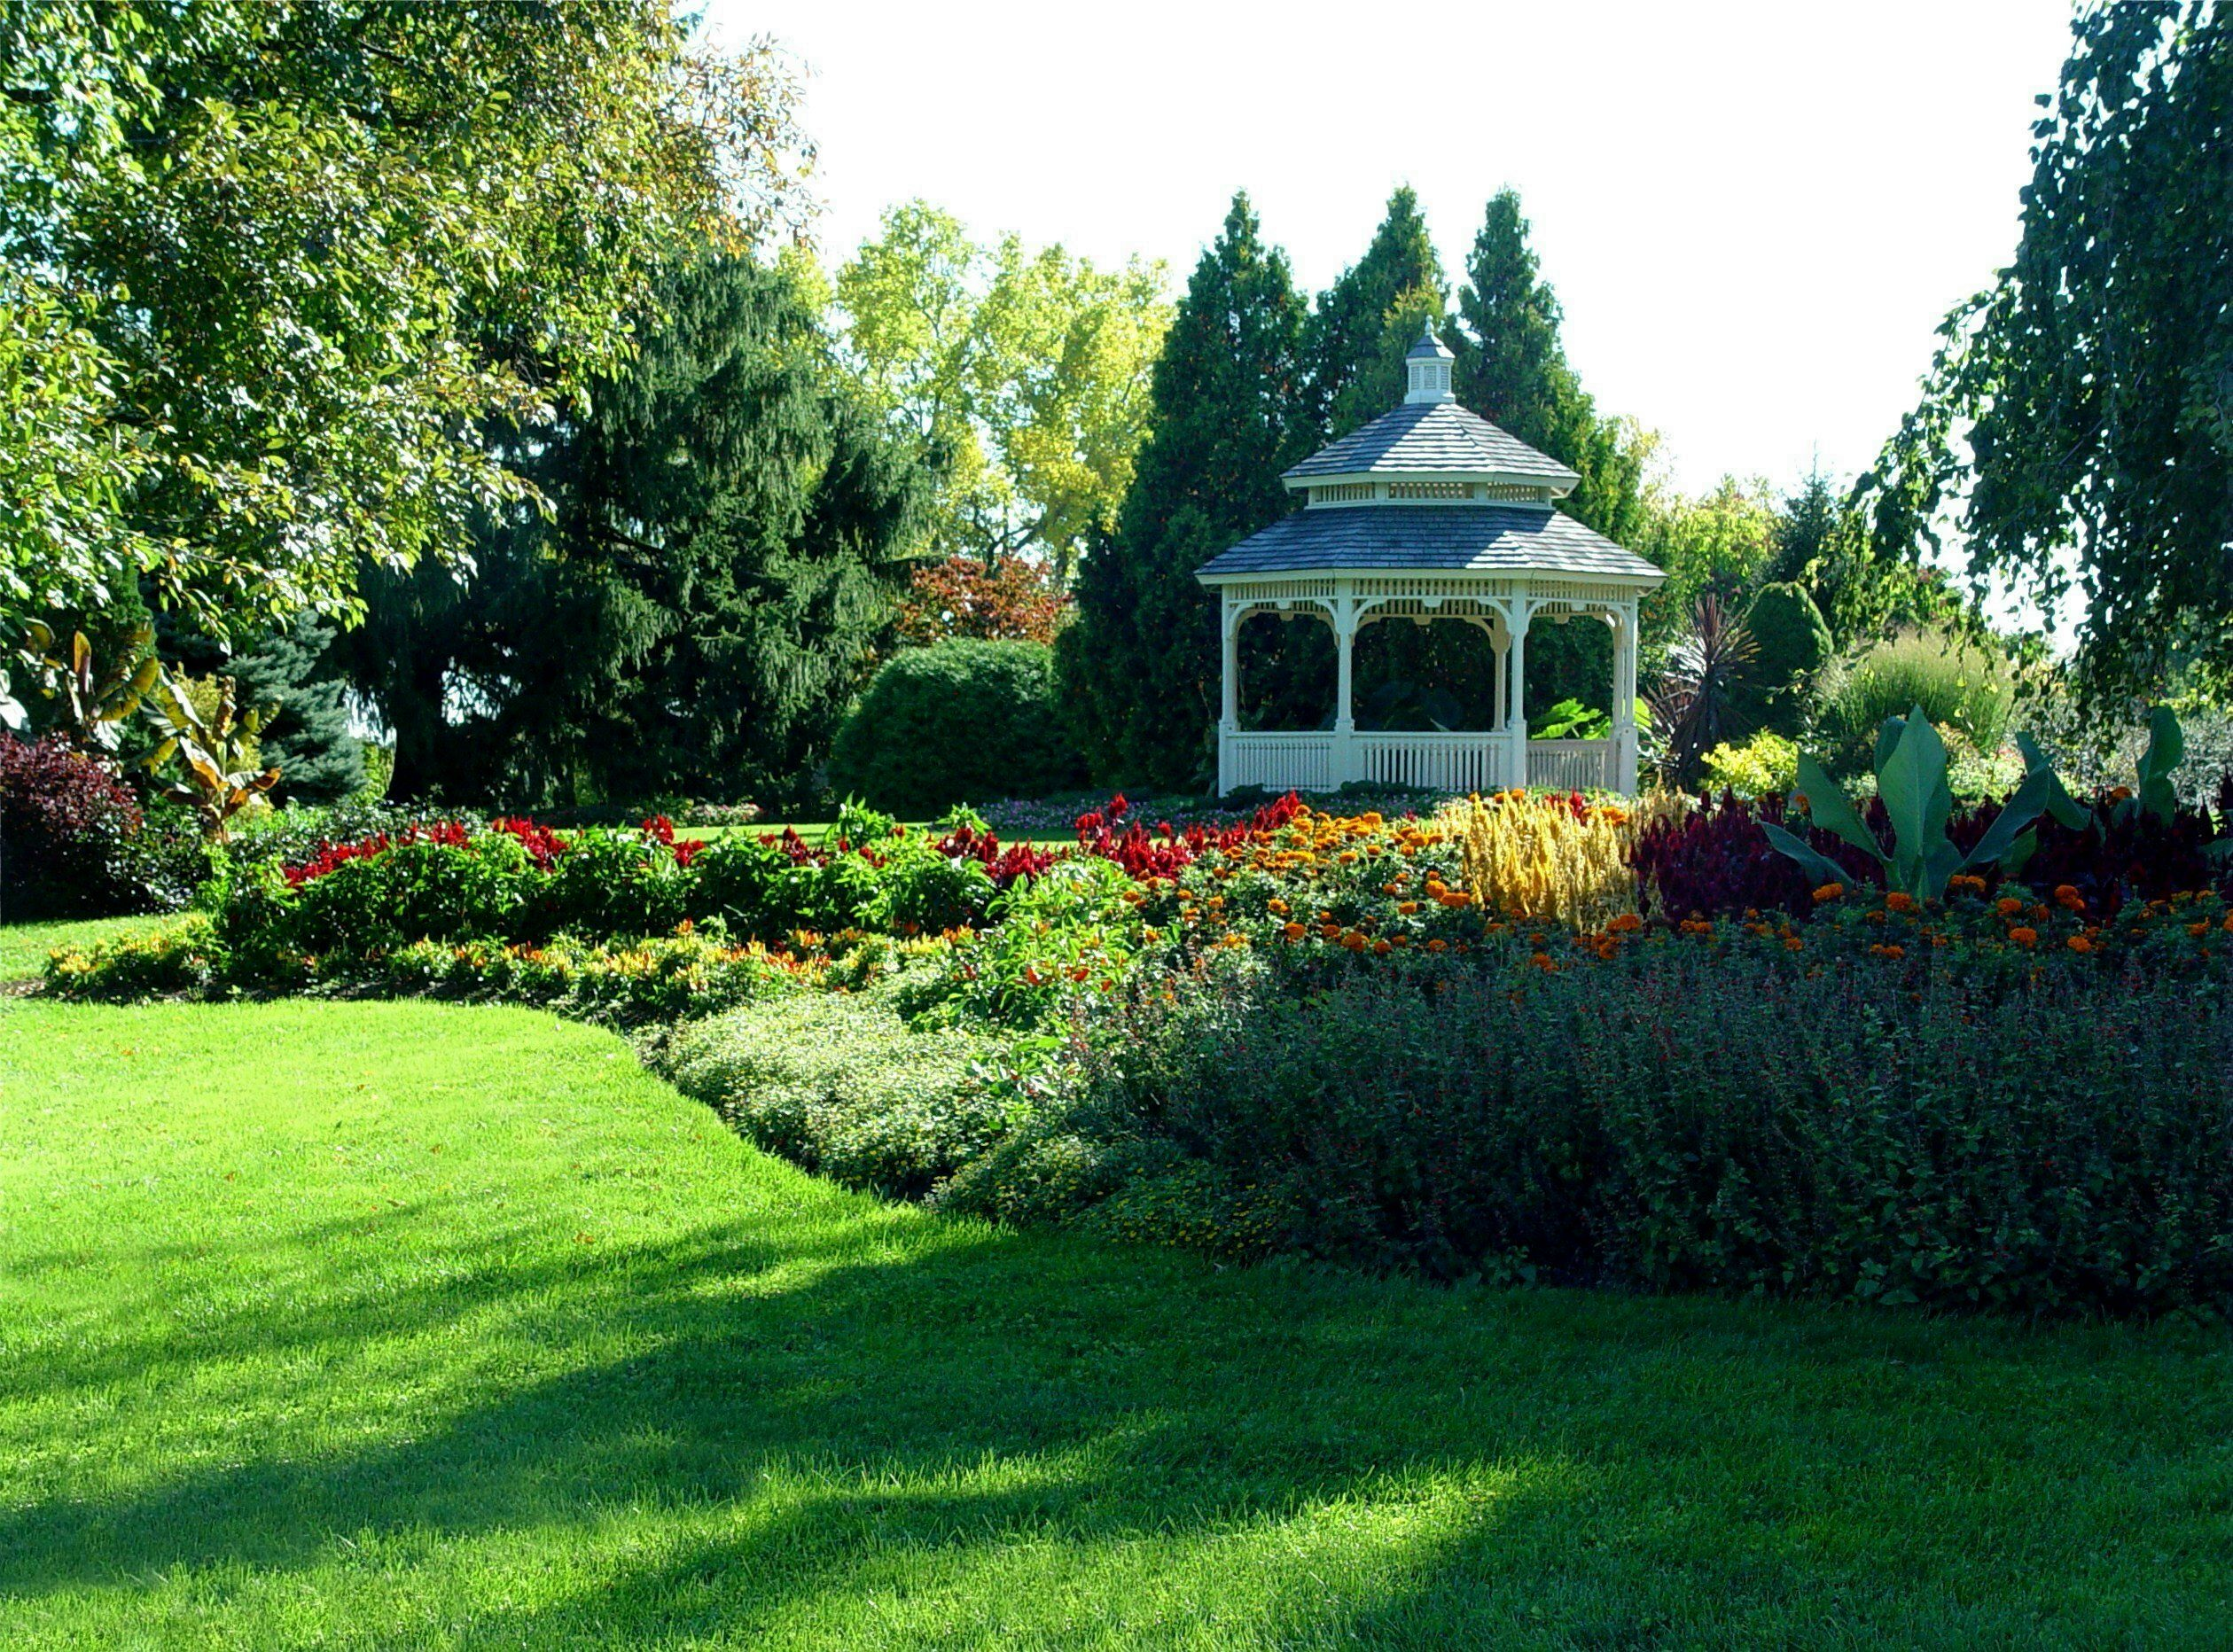 Hidden Lake Gardens ~ It Is A 755 Acre Botanical Garden U0026 Arboretum Owned  By Michigan